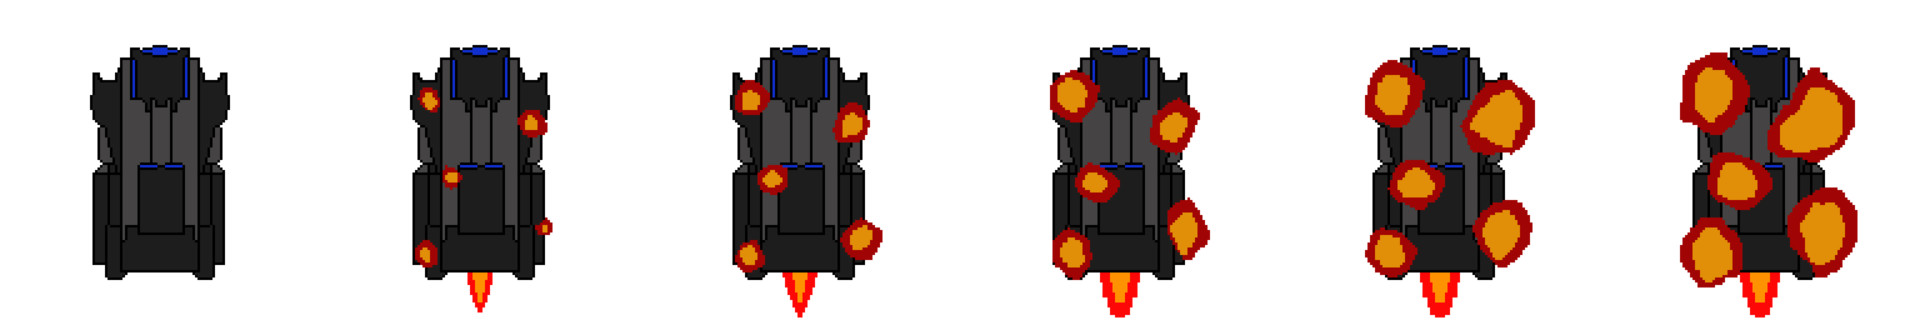 Early draft for a sprite sheet just for the enemy explosion animations.